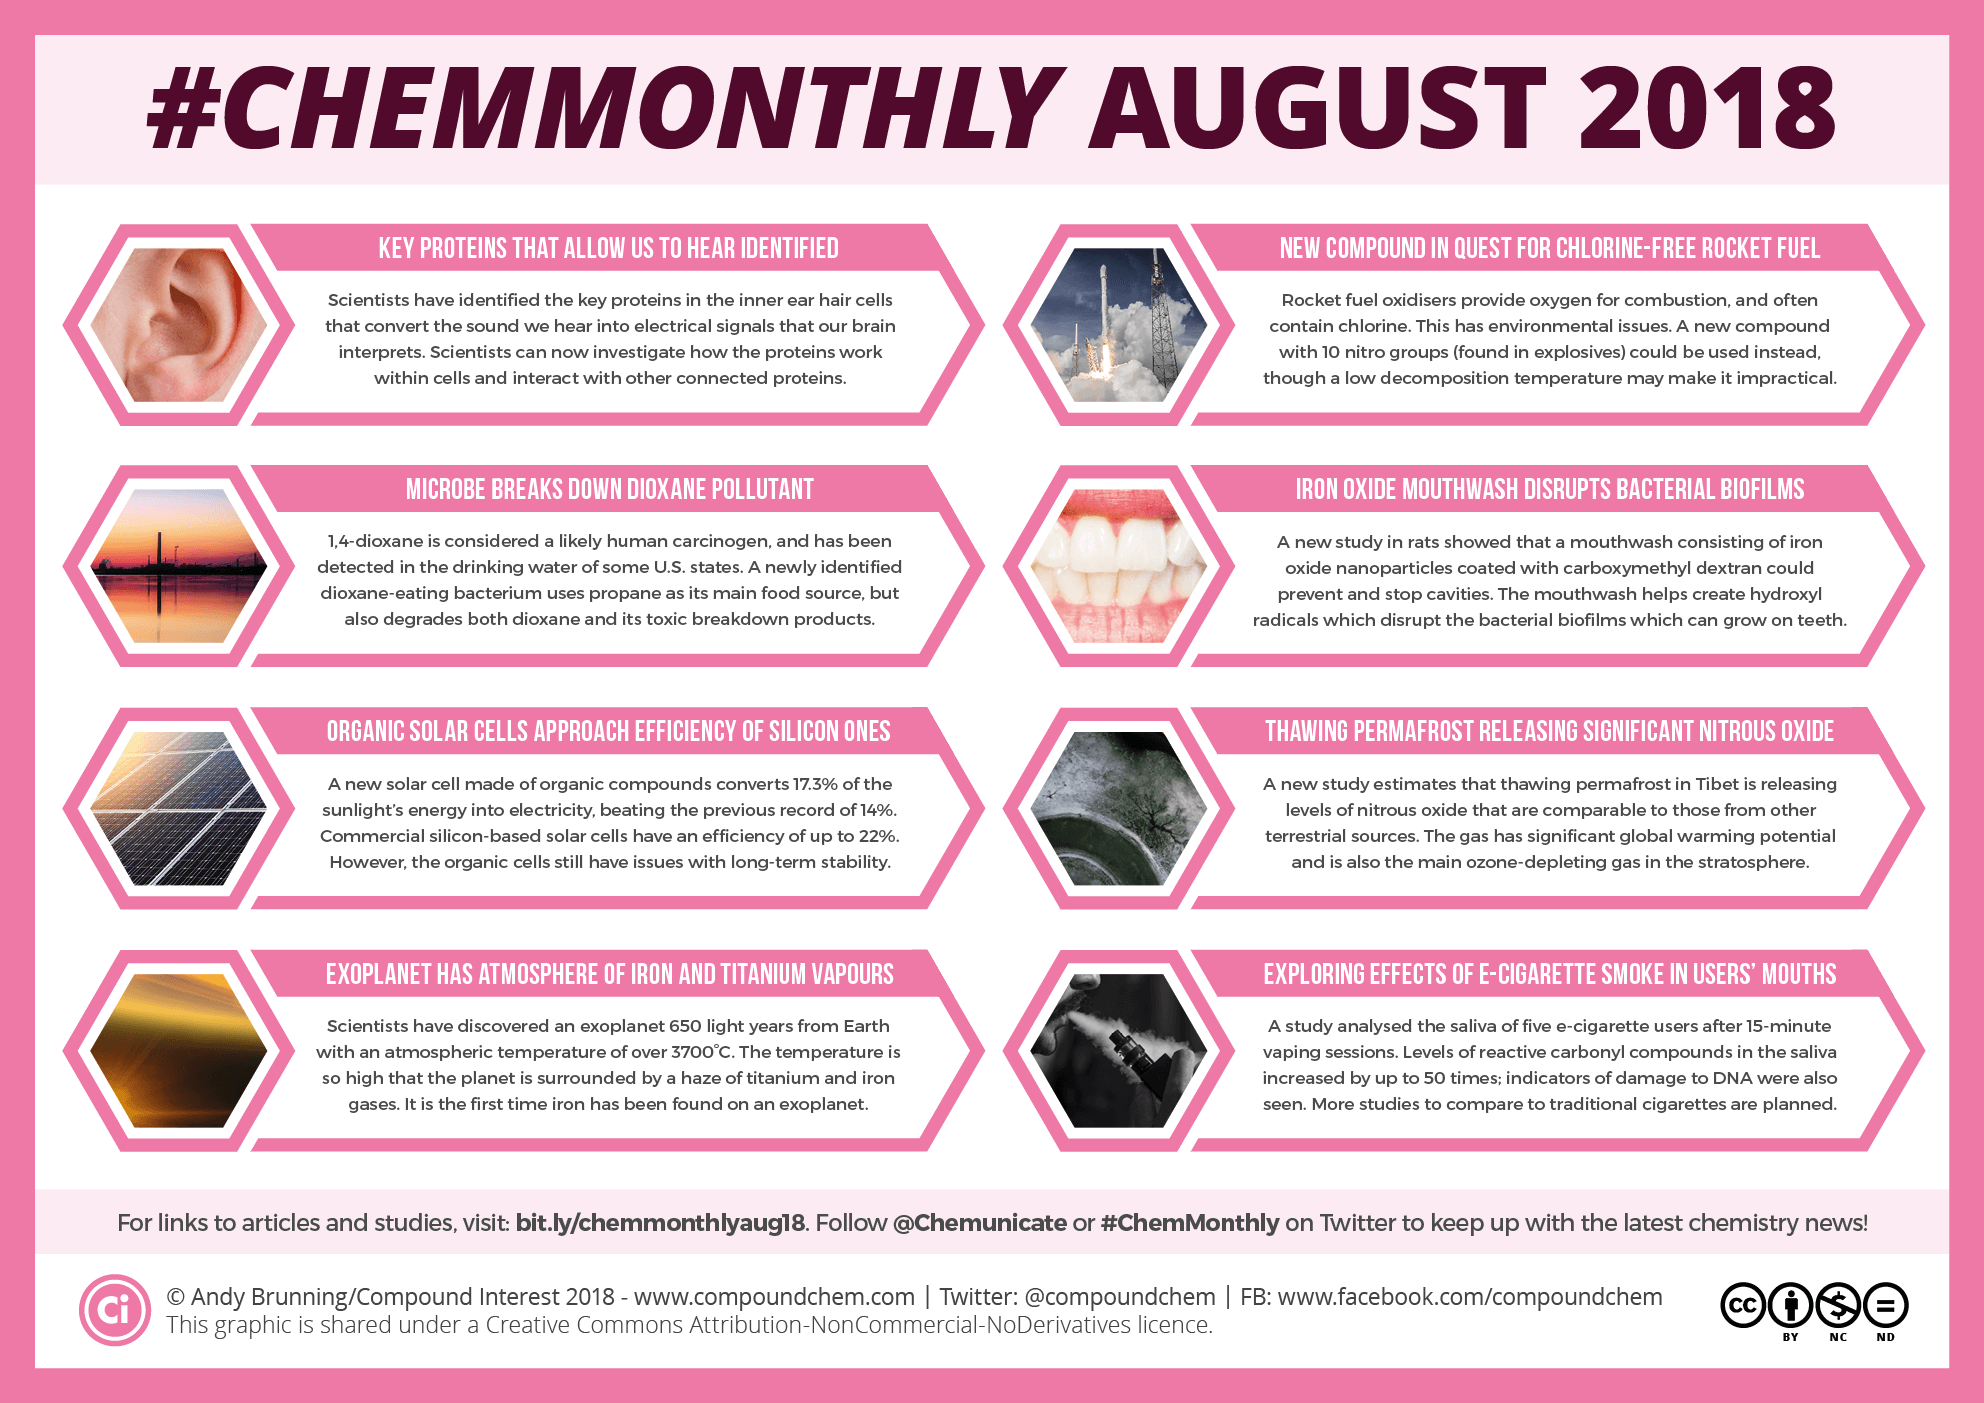 Chemmonthly august 2018 compound interest chemmonthly august 2018 hearing proteins an organic solar cell record and a planet with a titanium and iron atmosphere urtaz Image collections